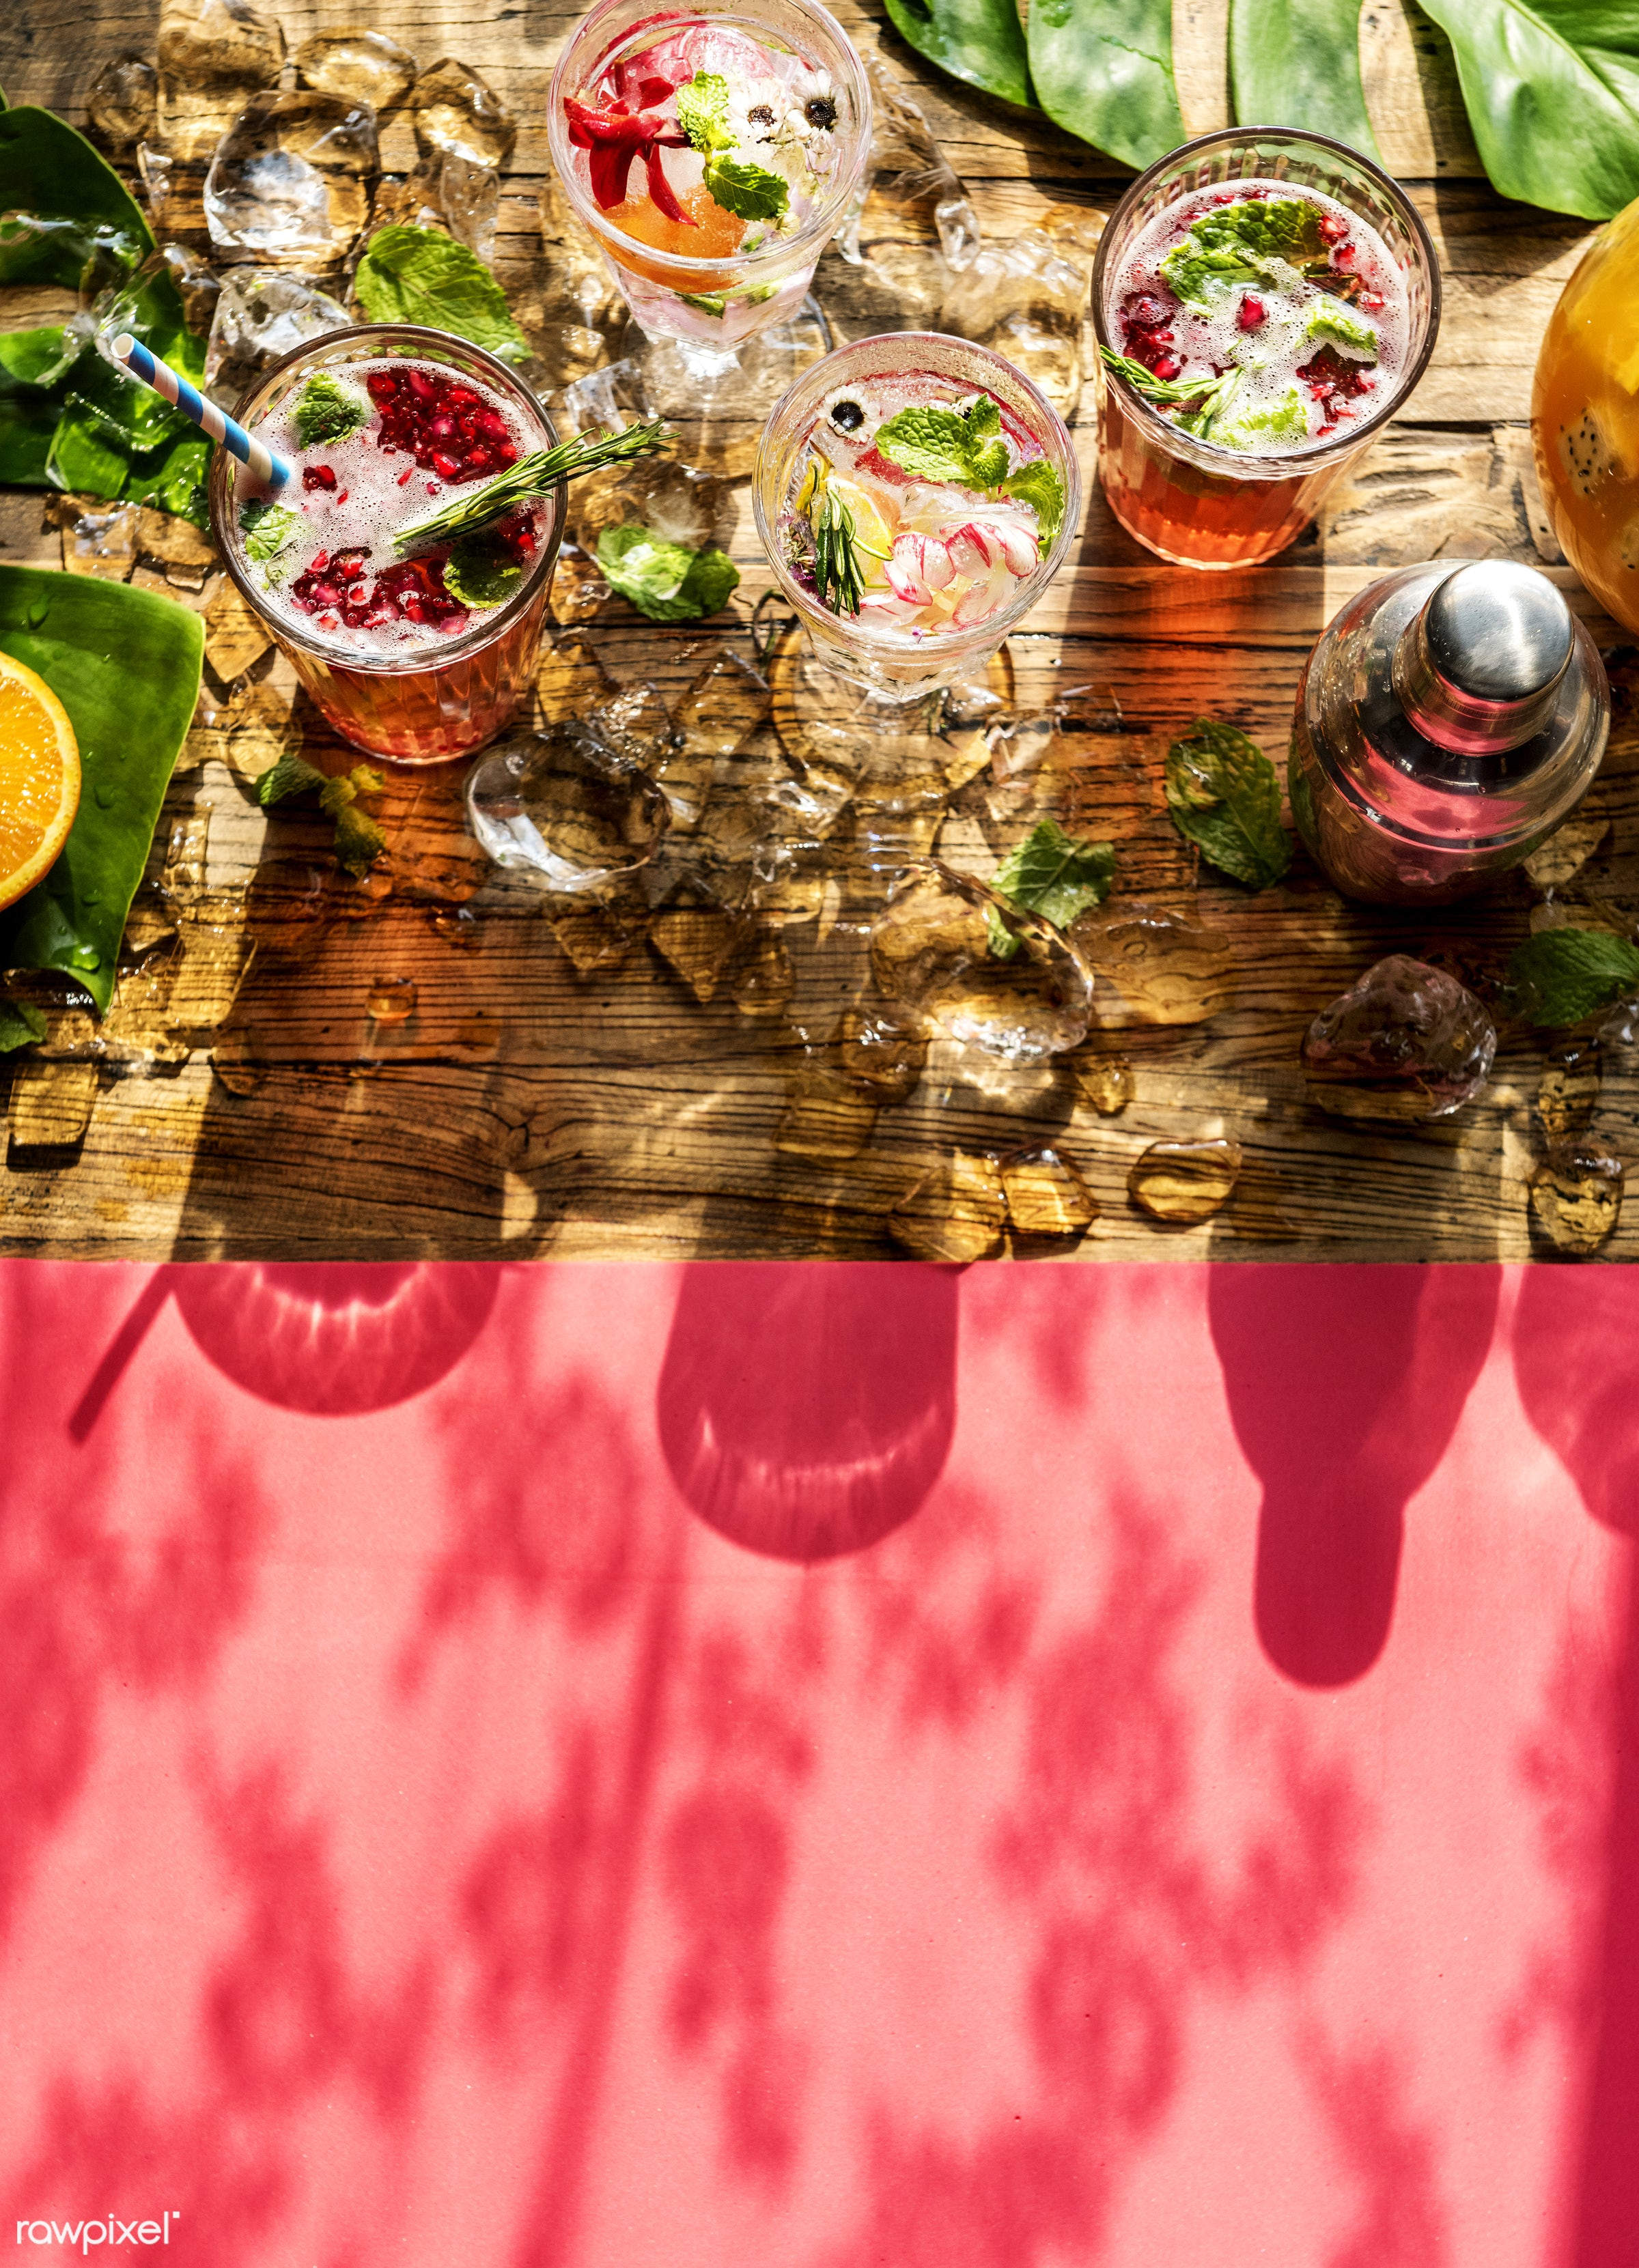 tropical, refreshment, fruits, table, drinks, shaker, wooden, fresh, ice, food, juice, cocktail, natural